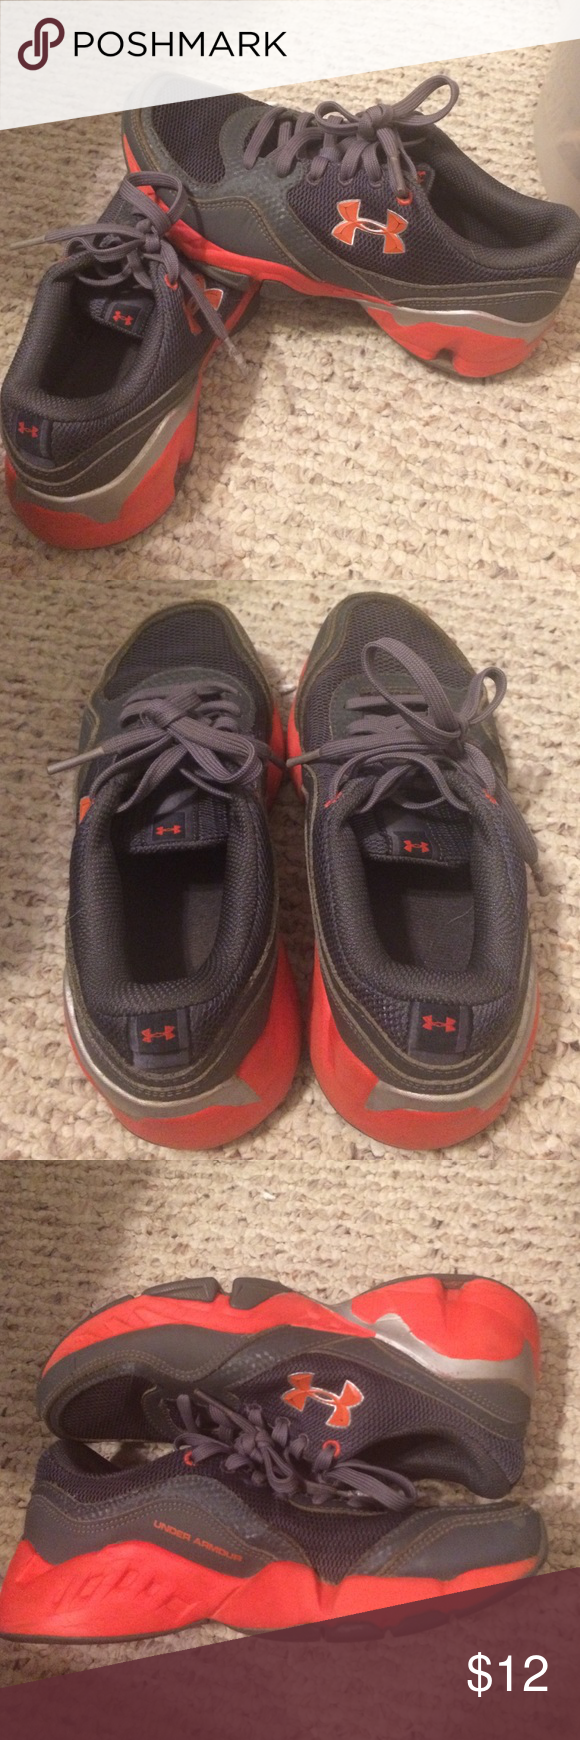 Under Armour Y-2 running shoes gray/orange Boys Youth Sz. 2 Under Armour running/tennis shoes- these have been worn but are still in good used condition. Under Armour Shoes Sneakers